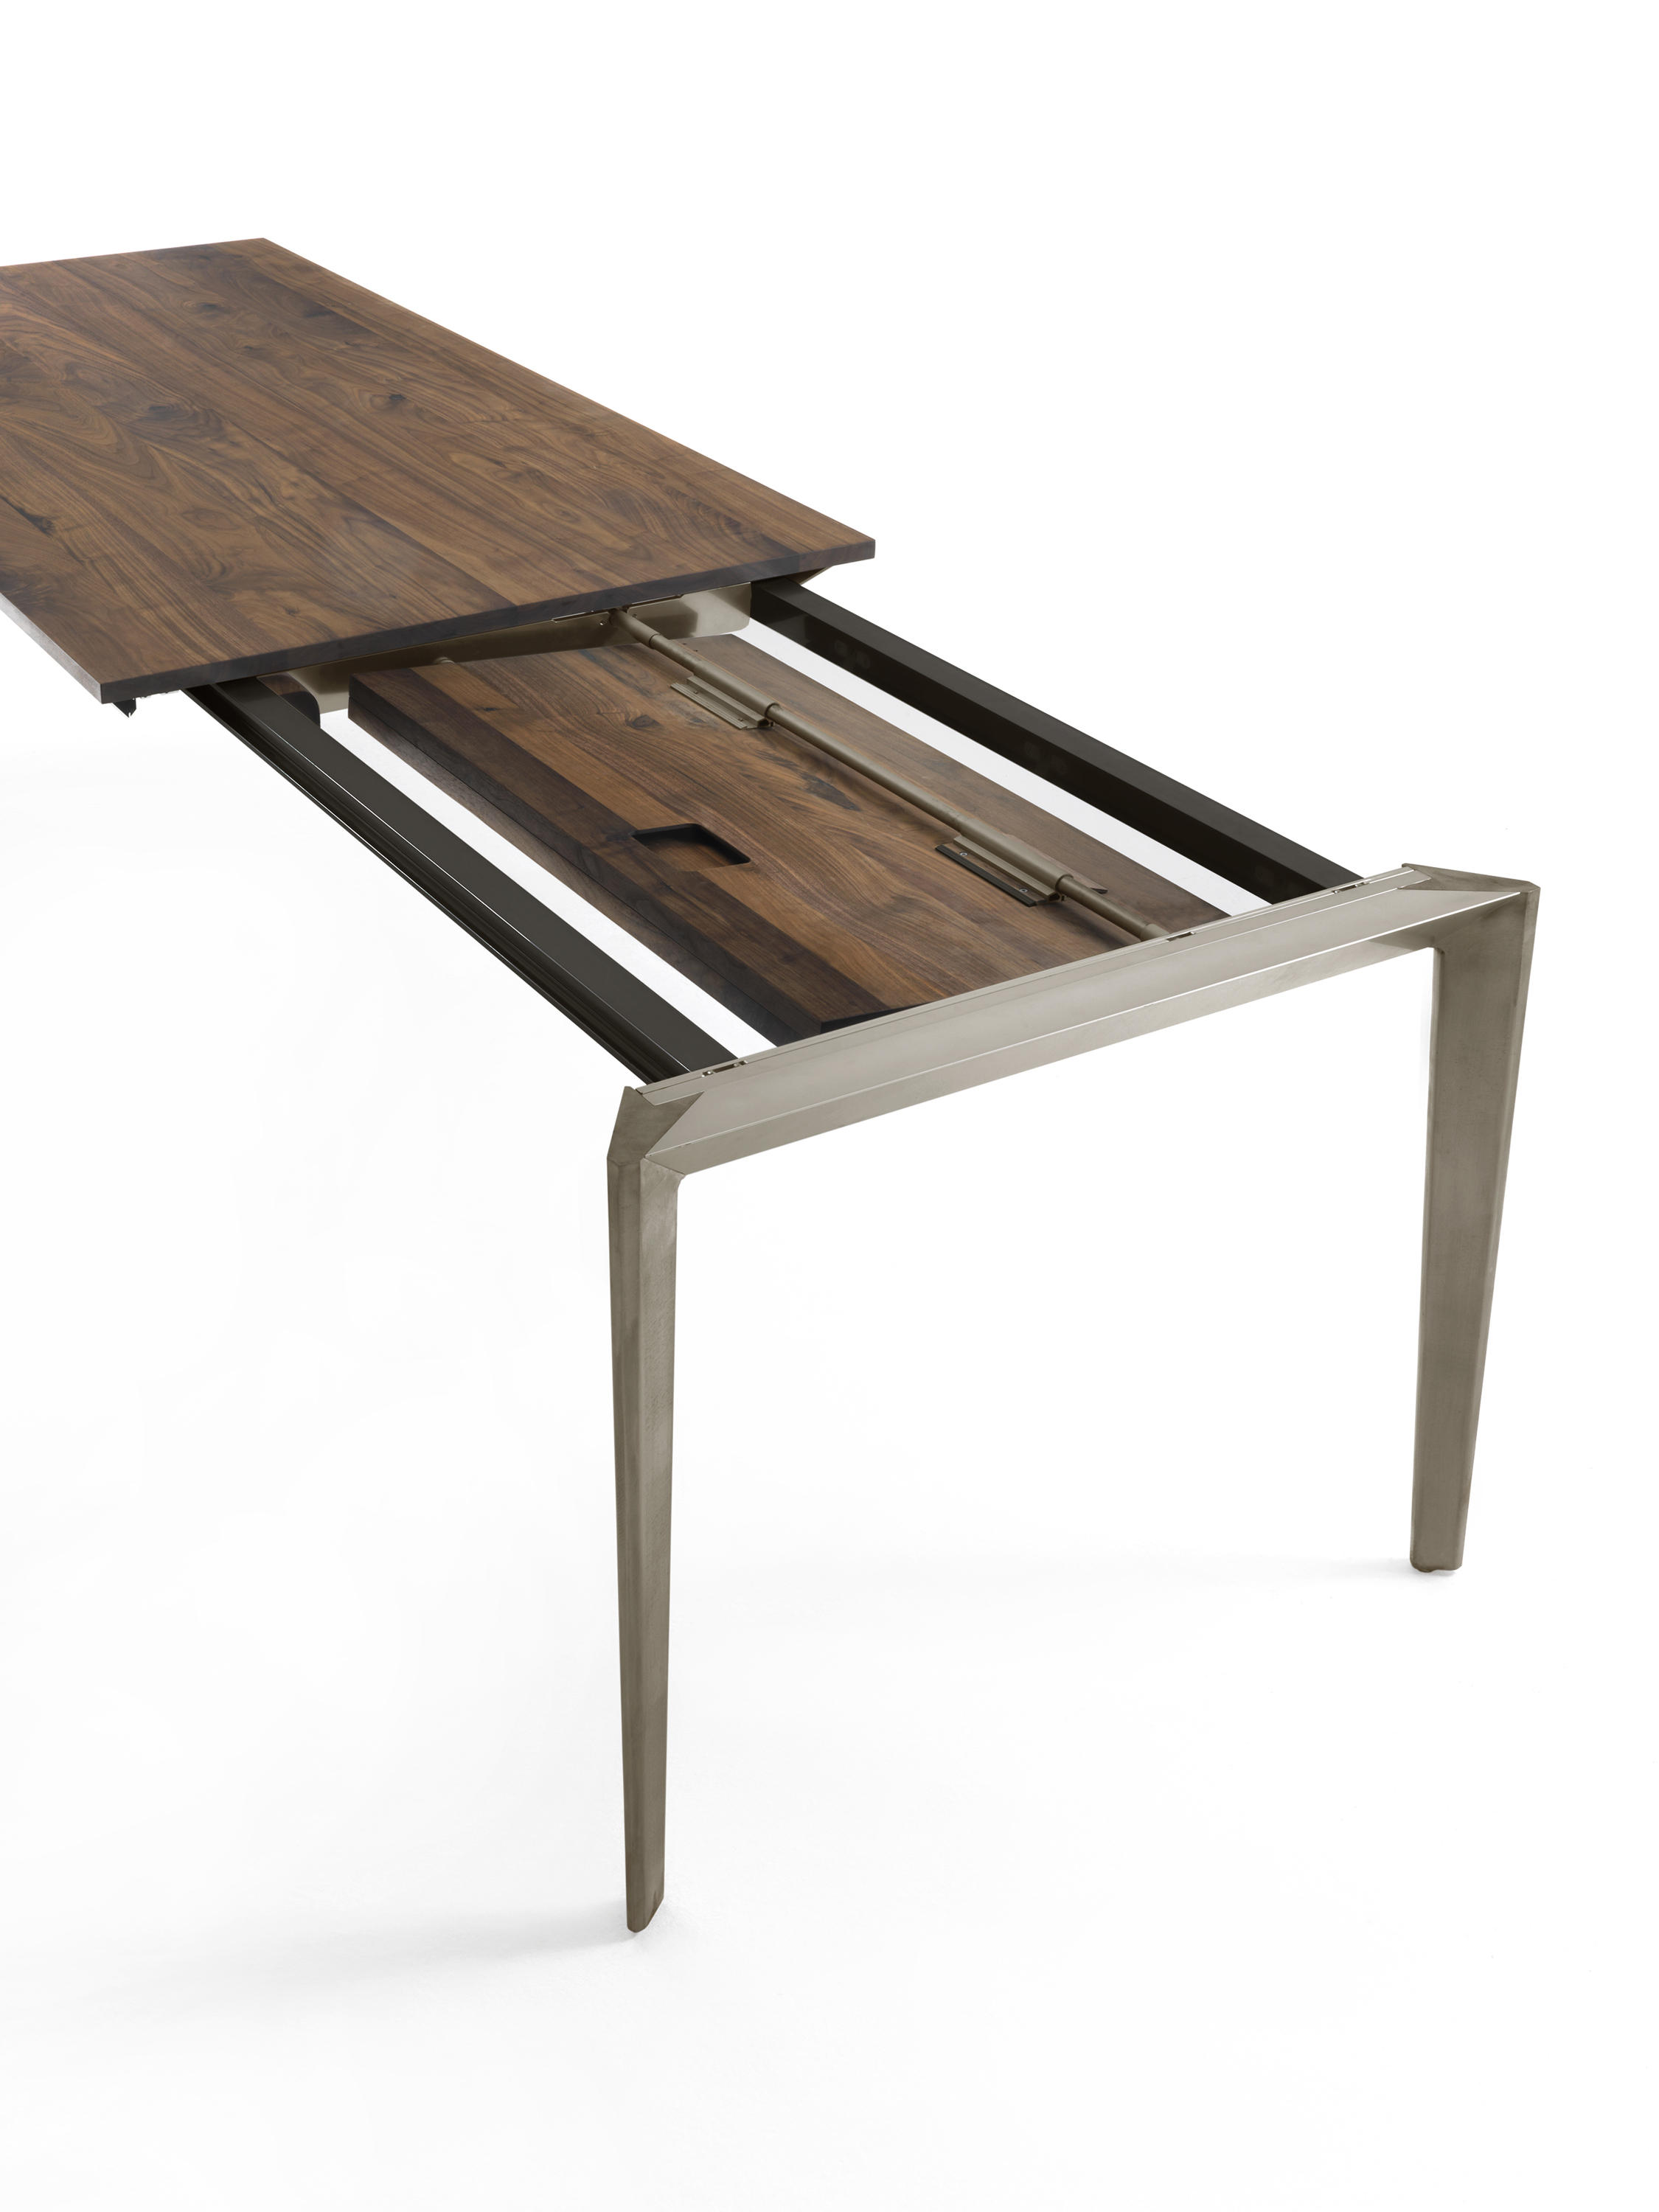 PRIME EXT - Restaurant tables from Riva 1920 | Architonic